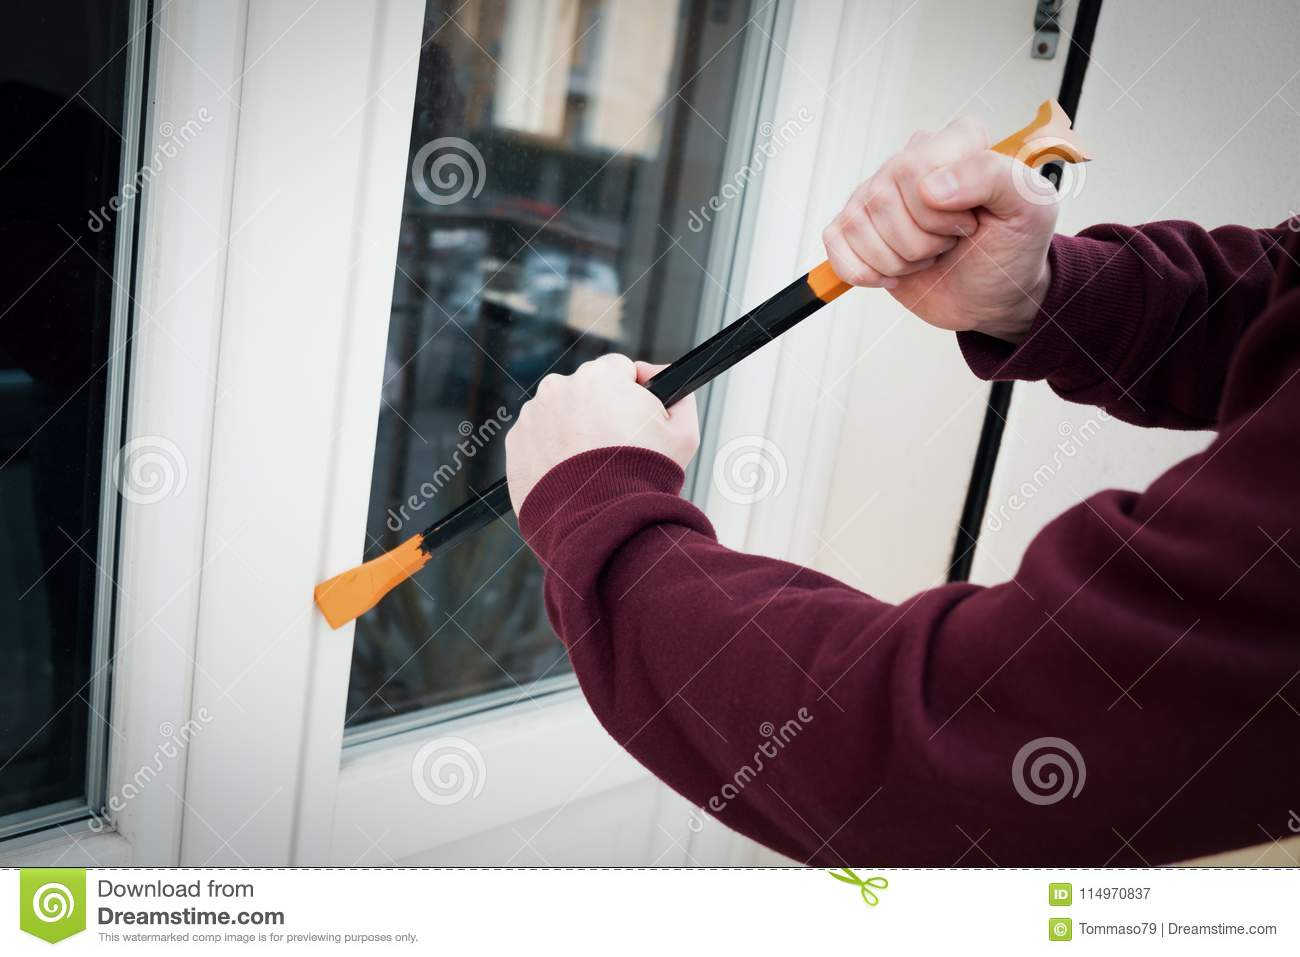 Hooded burglar forcing window lock to make a theft in a house